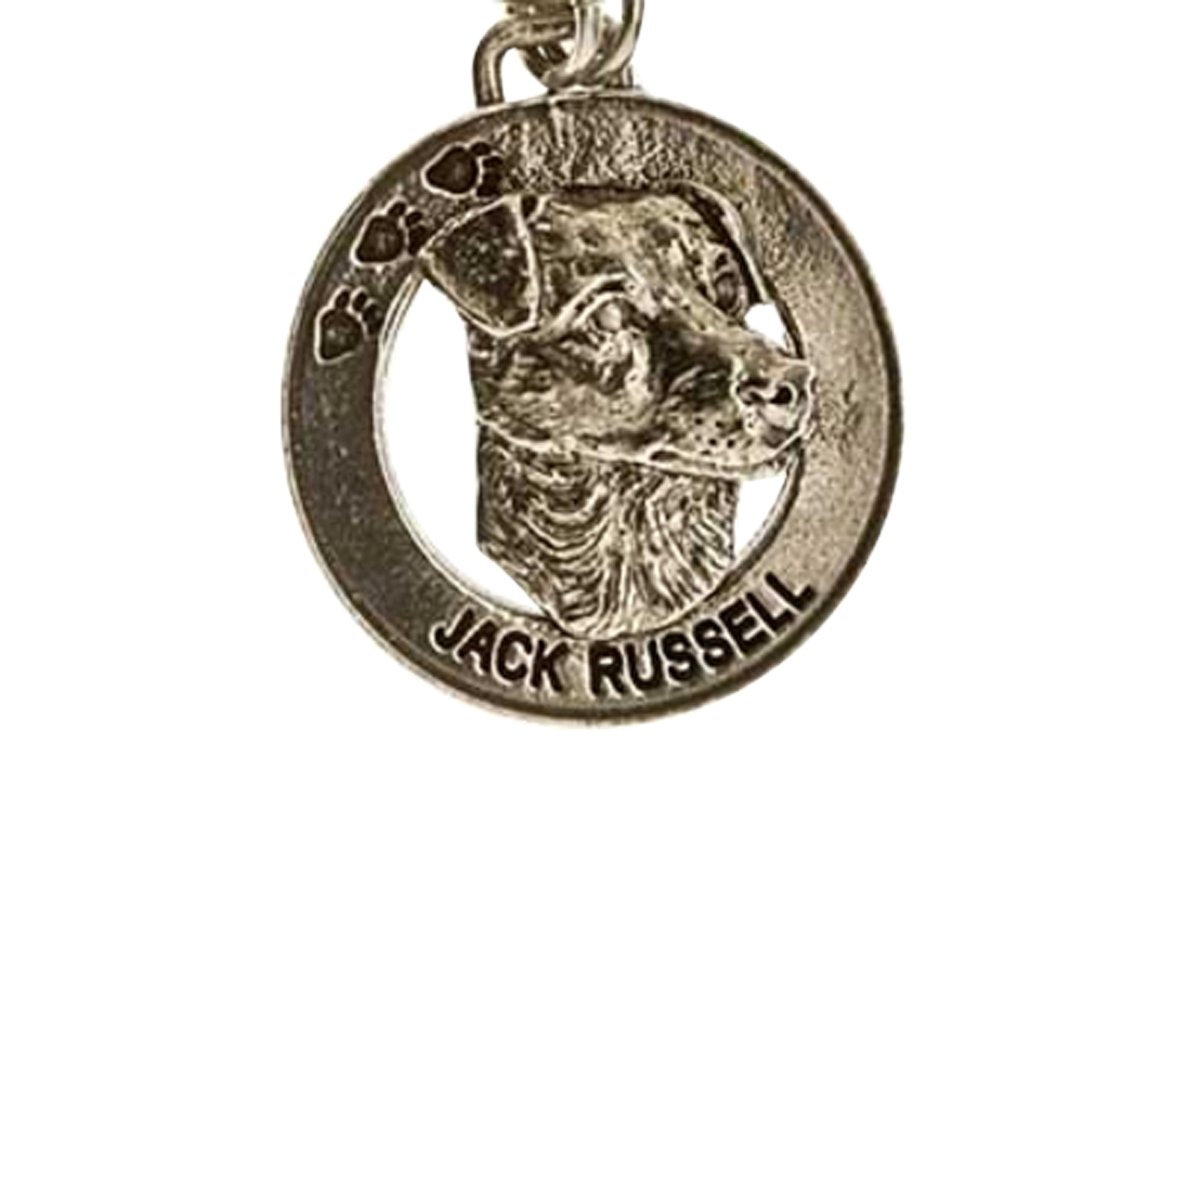 Creative Pewter Designs, Pewter Jack Russel Terrier Key Chain, Antiqued Finish, DK106 by Creative Pewter Designs (Image #1)